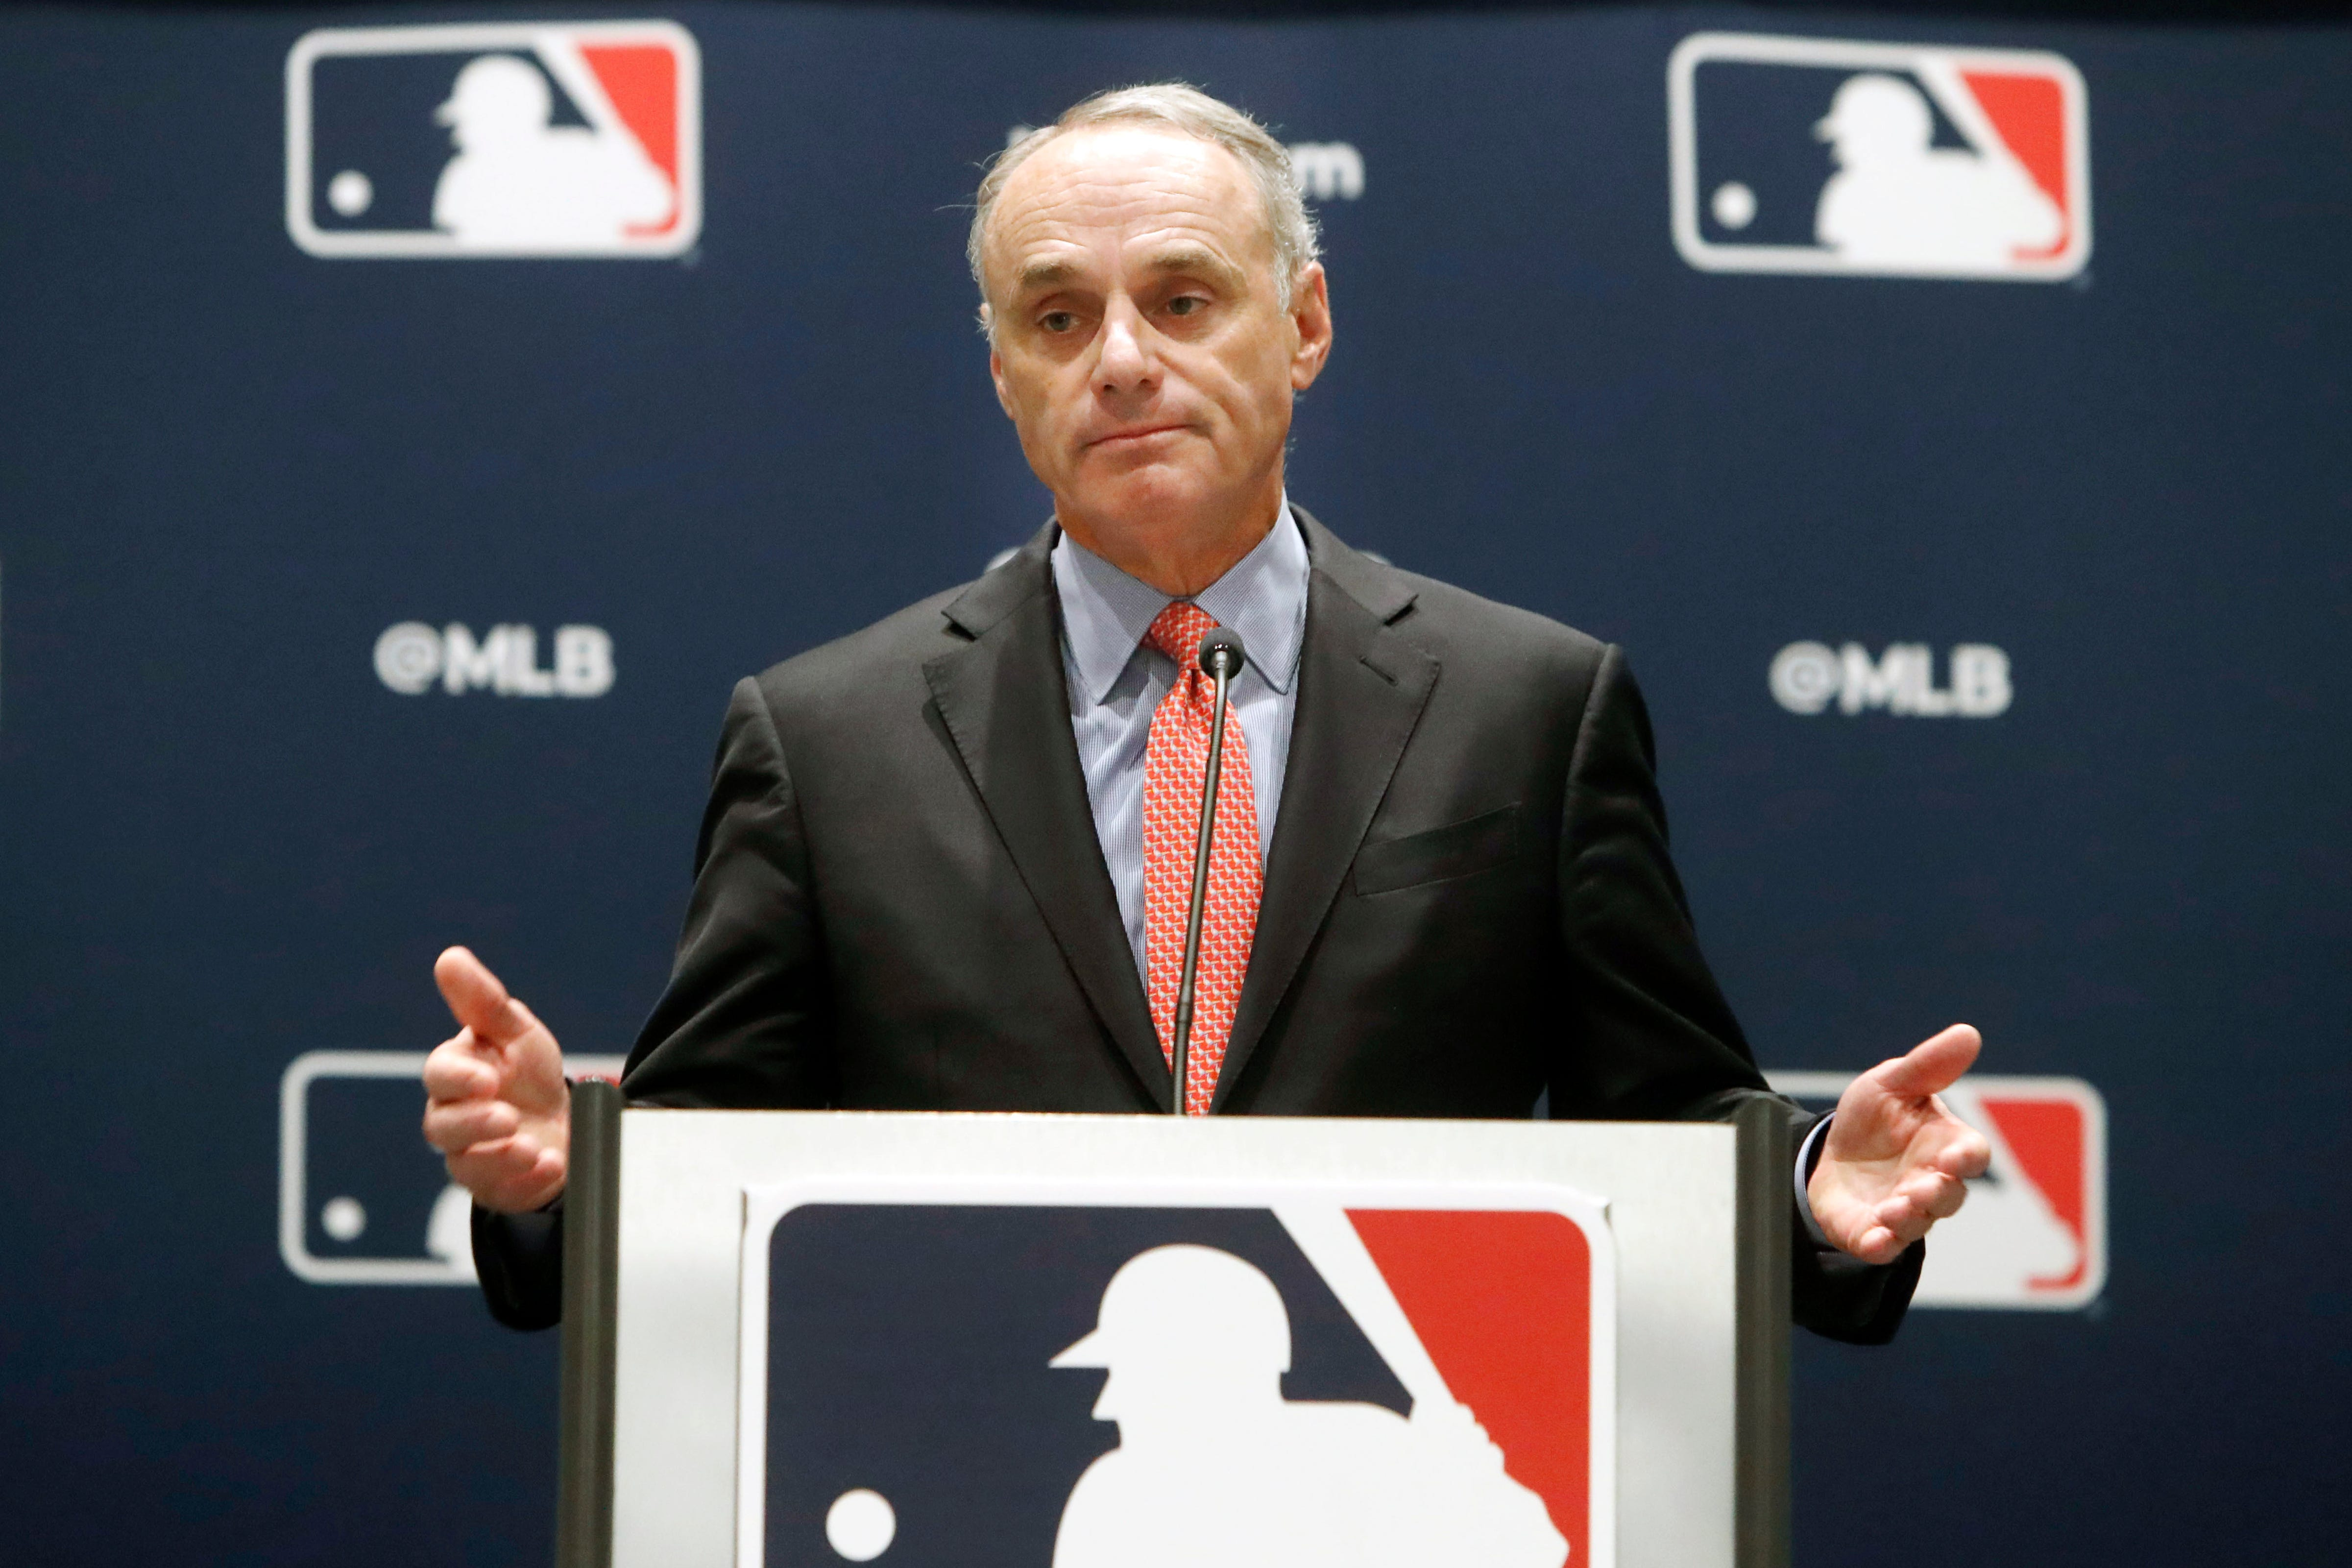 Time running out: MLB commissioner could implement shortened season even without players  approval